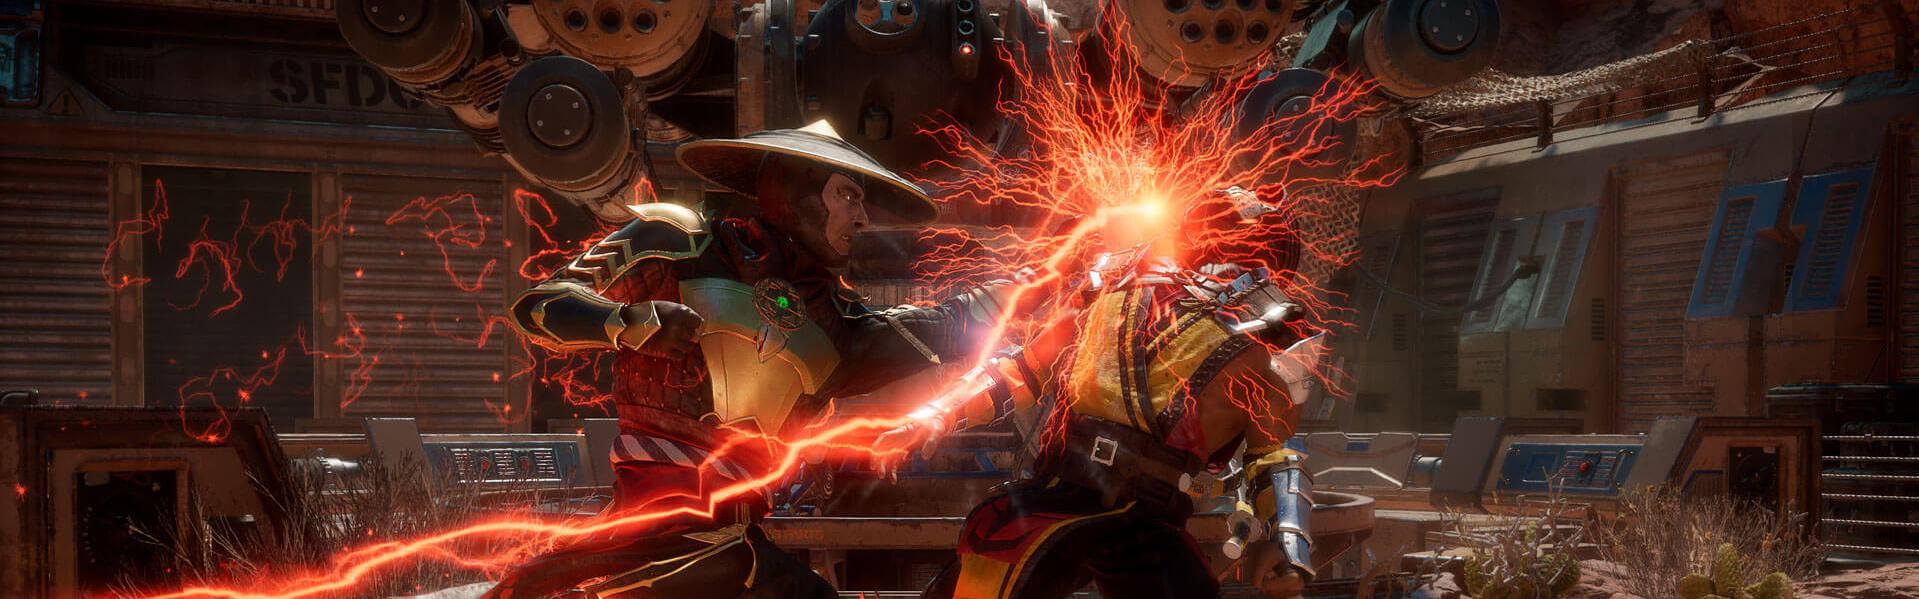 Mortal Kombat 11 (Premium Edition) (Xbox One) Xbox Live Key EUROPE